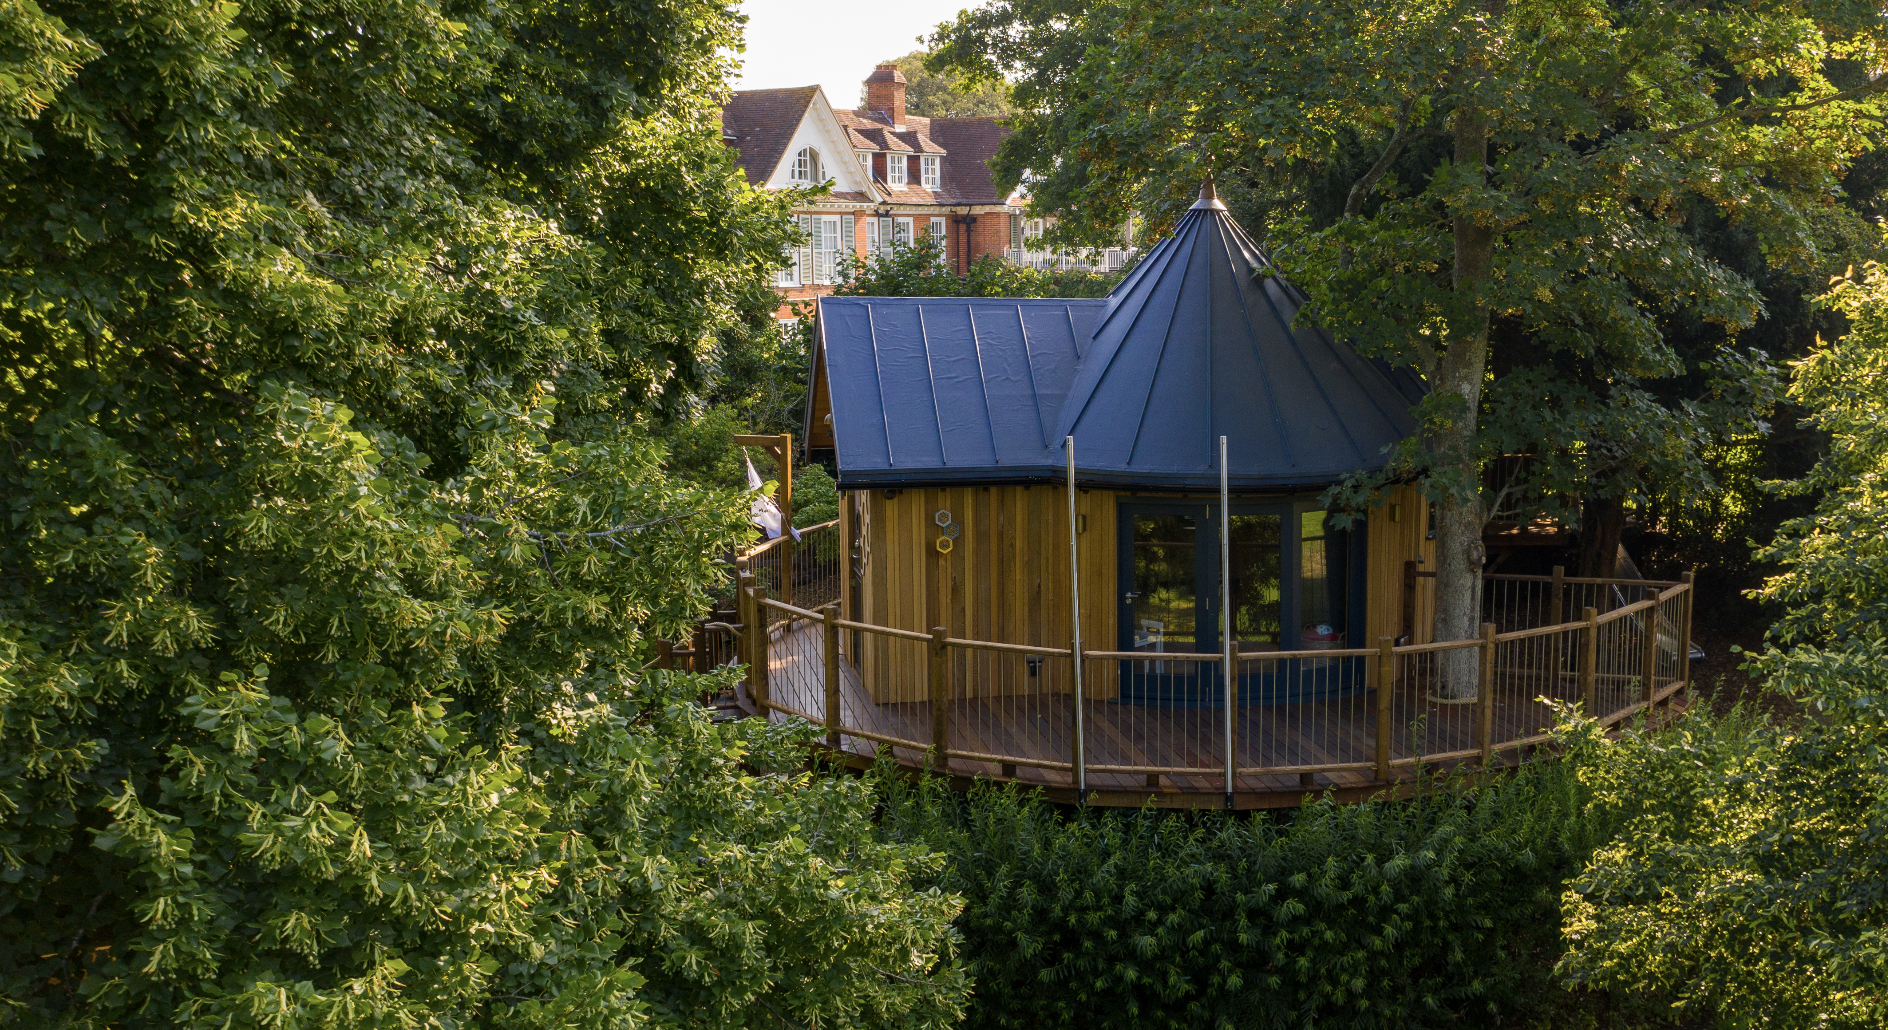 Top 10 Most Unusual Hotels in the UK